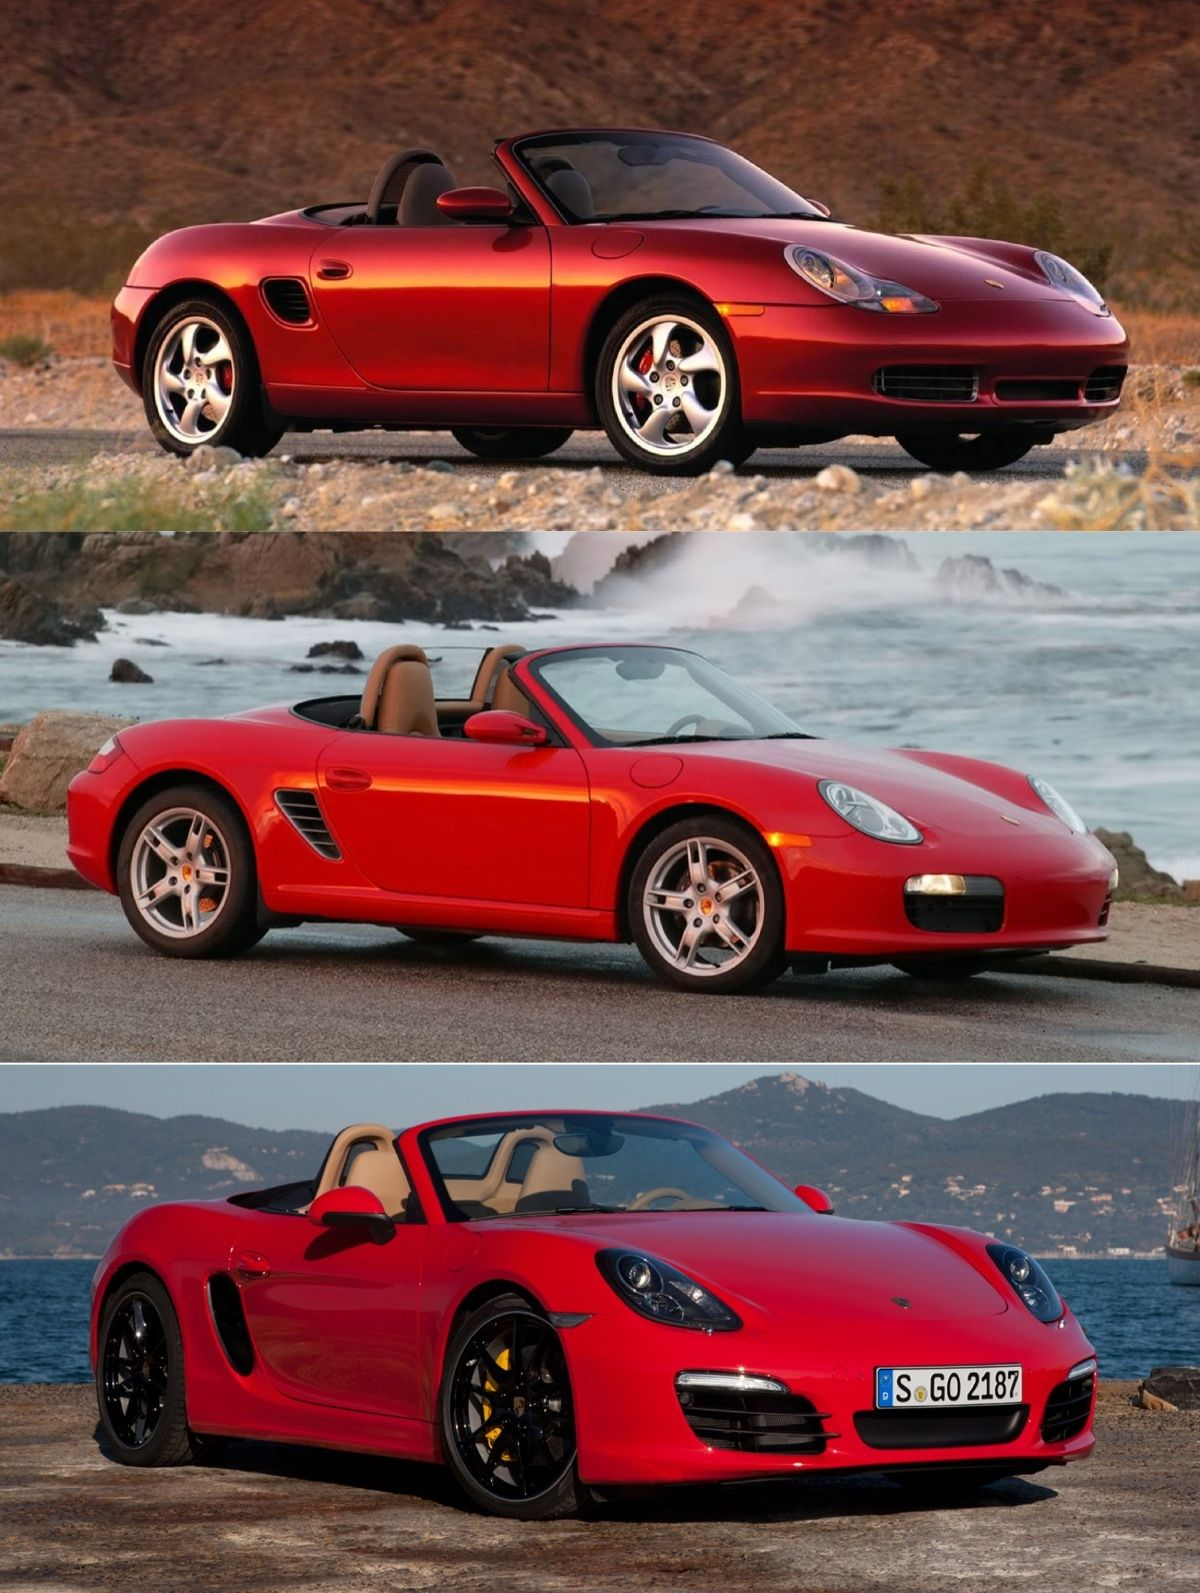 Boxster evolution Porsche Boxster, Porsche Models, Porsche Cars, Car  Posters, Car Photography